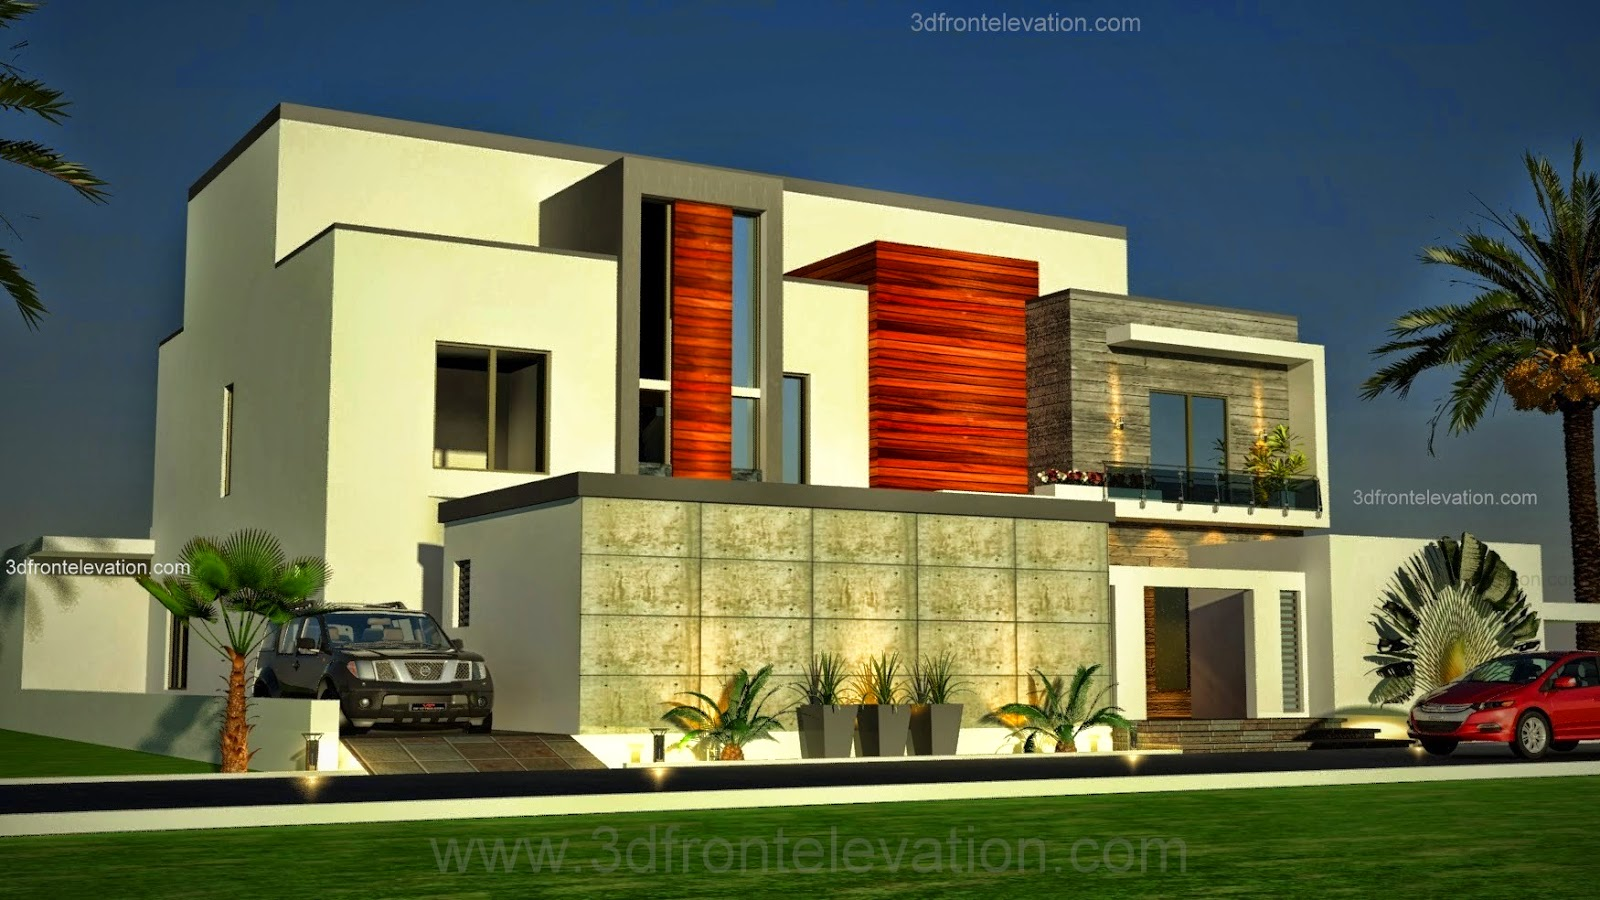 D Front Elevation Of School : Dubai modern houses